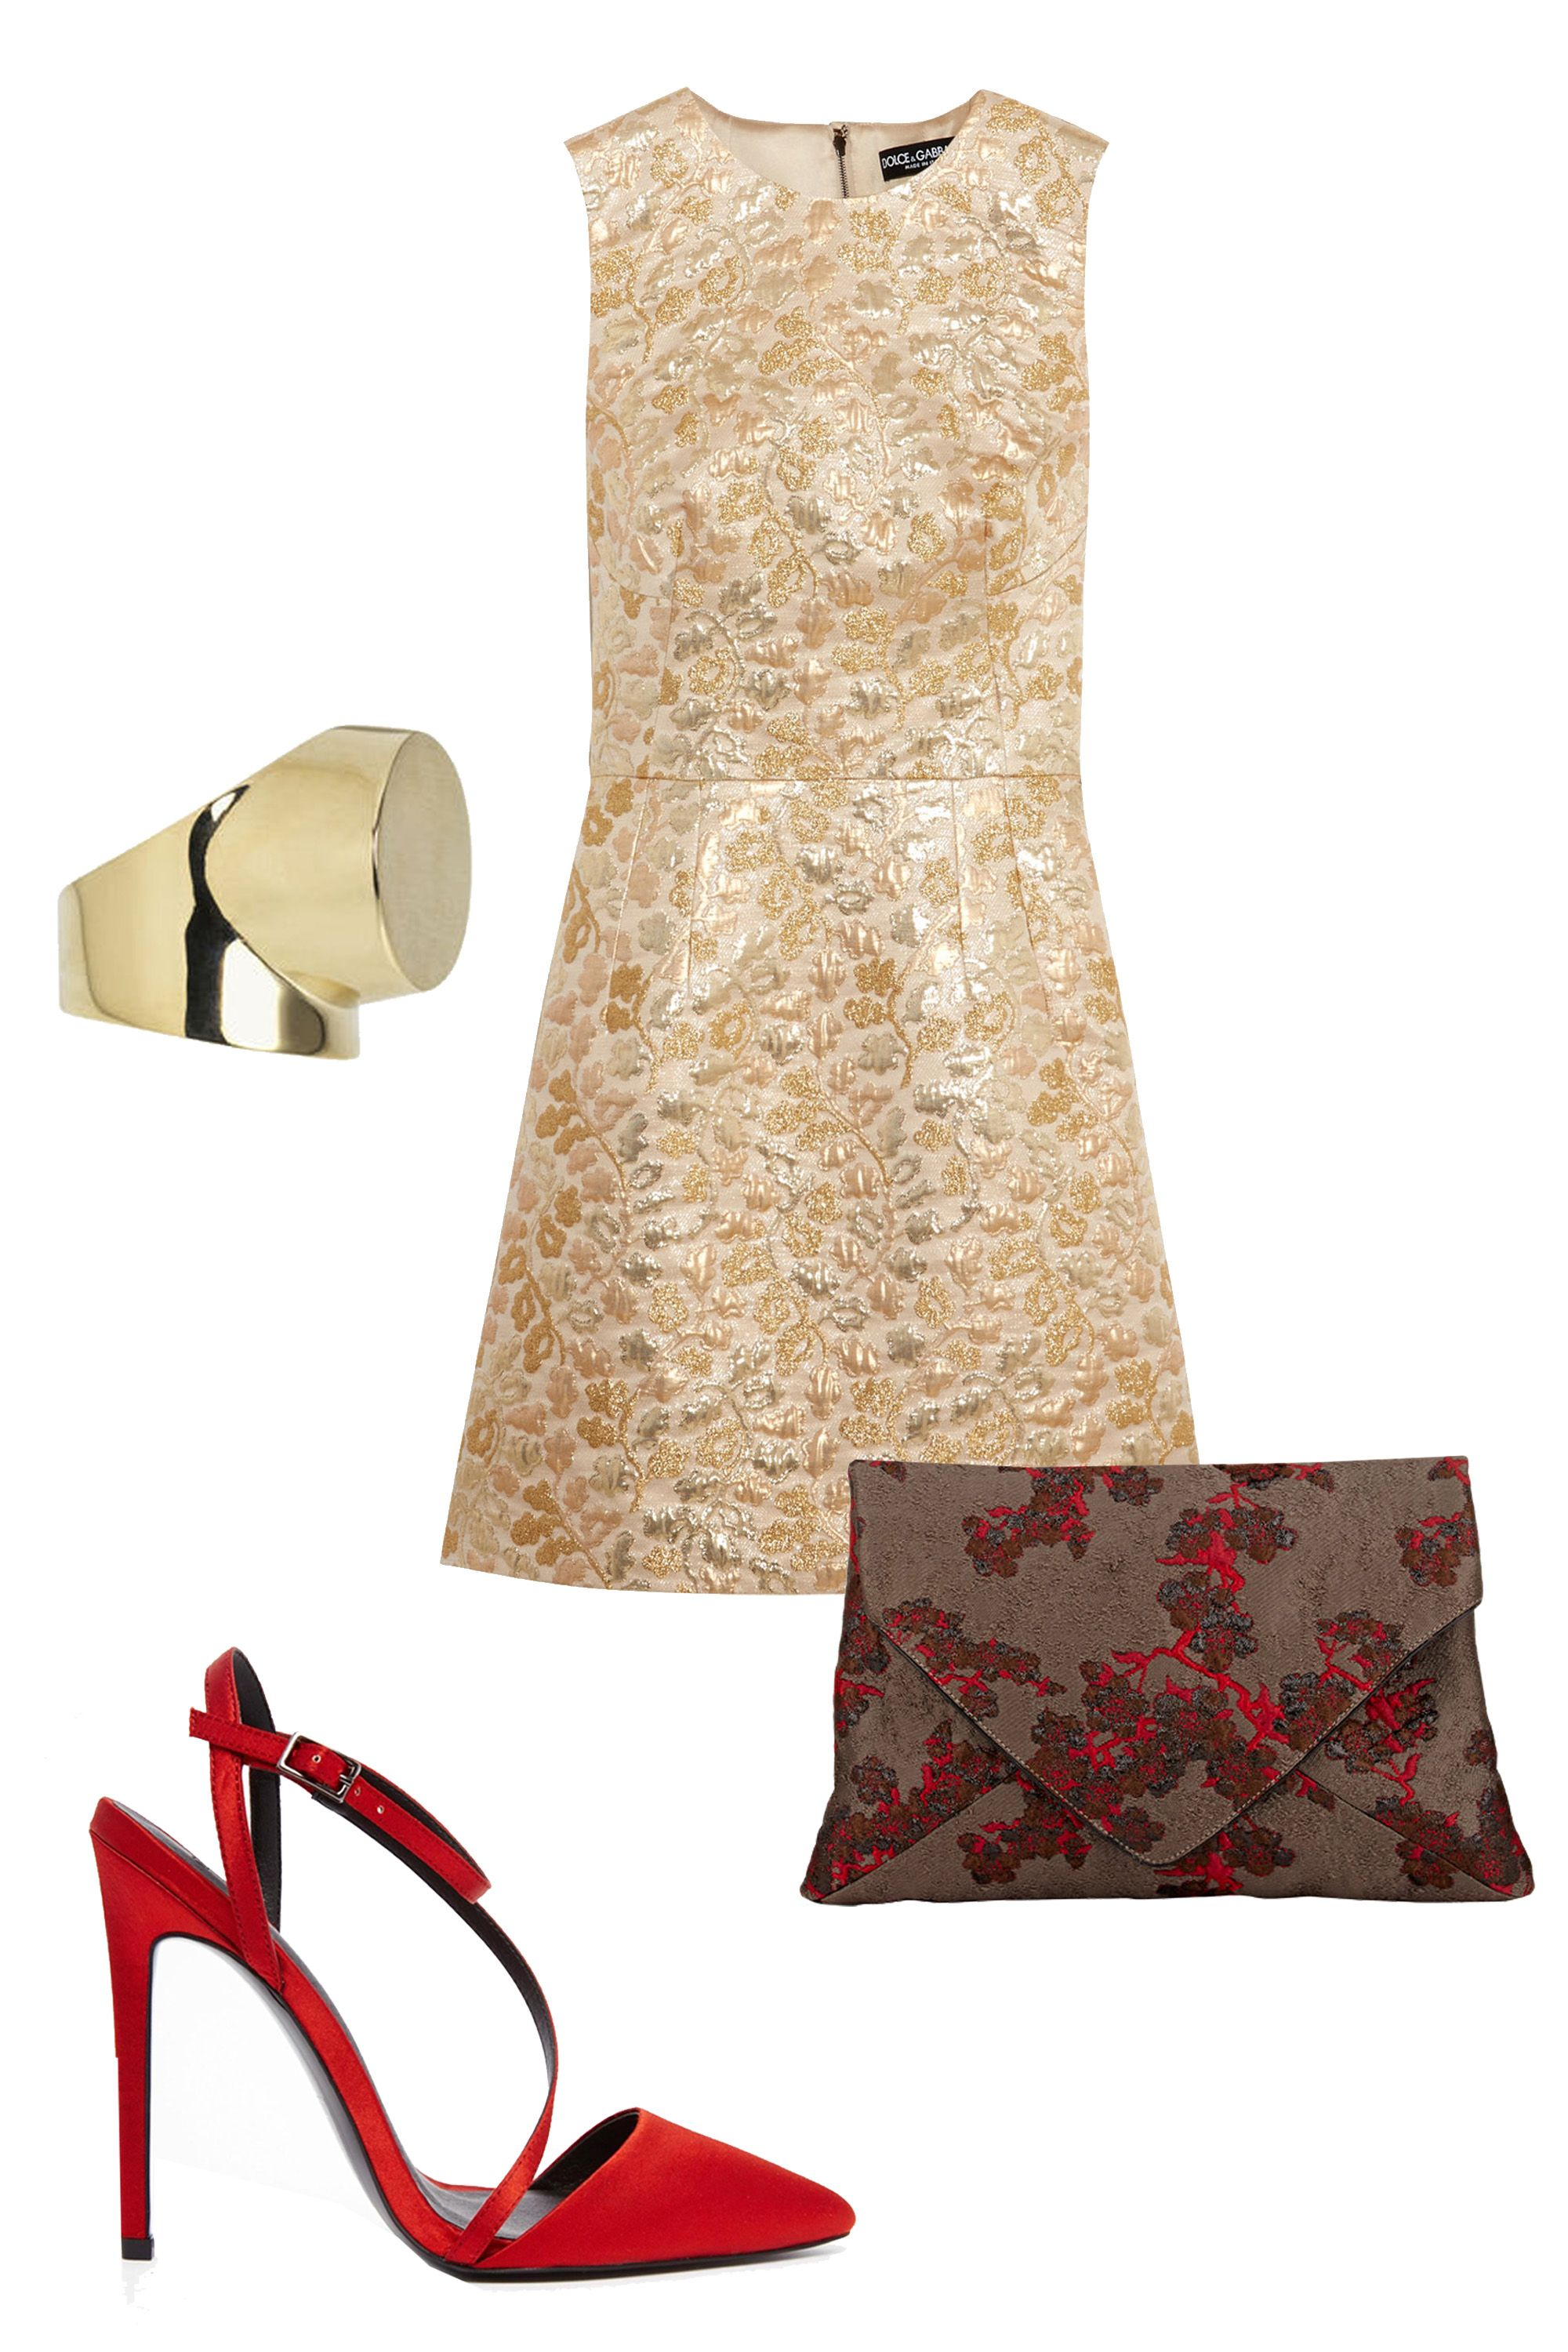 "<p>You can skip the hoisery for your mom's holiday fete. Vibrant accessories in shades of red won't seem too risque in this environment. </p><p>Dolce & Gabbana Metallic Brocade Mini Dress, $2,295; <u><a href=""http://www.net-a-porter.com/us/en/product/644449/dolce___gabbana/metallic-brocade-mini-dress"" target=""_blank"">net-a-porter.com</a></u><br></p><p><u><a href=""http://www.net-a-porter.com/us/en/product/644449/dolce___gabbana/metallic-brocade-mini-dress""></a></u>Dries Van Noten Envelope Clutch, $429; <a href=""http://www.barneys.com/dries-van-noten-envelope-clutch-504202148.html#prefn1=productAccess&sz=48&start=148&prefv1=isPublic"" target=""_blank""><u>barneys.com</u></a></p><p>ASOS Primrose Pointed Heels, $76; <a href=""http://us.asos.com/asos/asos-primrose-pointed-heels/prod/pgeproduct.aspx?iid=5680280&clr=Rust&SearchQuery=ASOS+PRIMROSE&SearchRedirect=true"" target=""_blank""><u>asos.com</u></a></p><p>By Malene Birger Saint Ring, £89; <a href=""http://www.bymalenebirger.com/gb/jewellery/saint-ring-Q57095023.html?cgid=Wc1364786&dwvar_Q57095023_color=002"" target=""_blank""><u>bymalenebirger.com</u></a></p>"